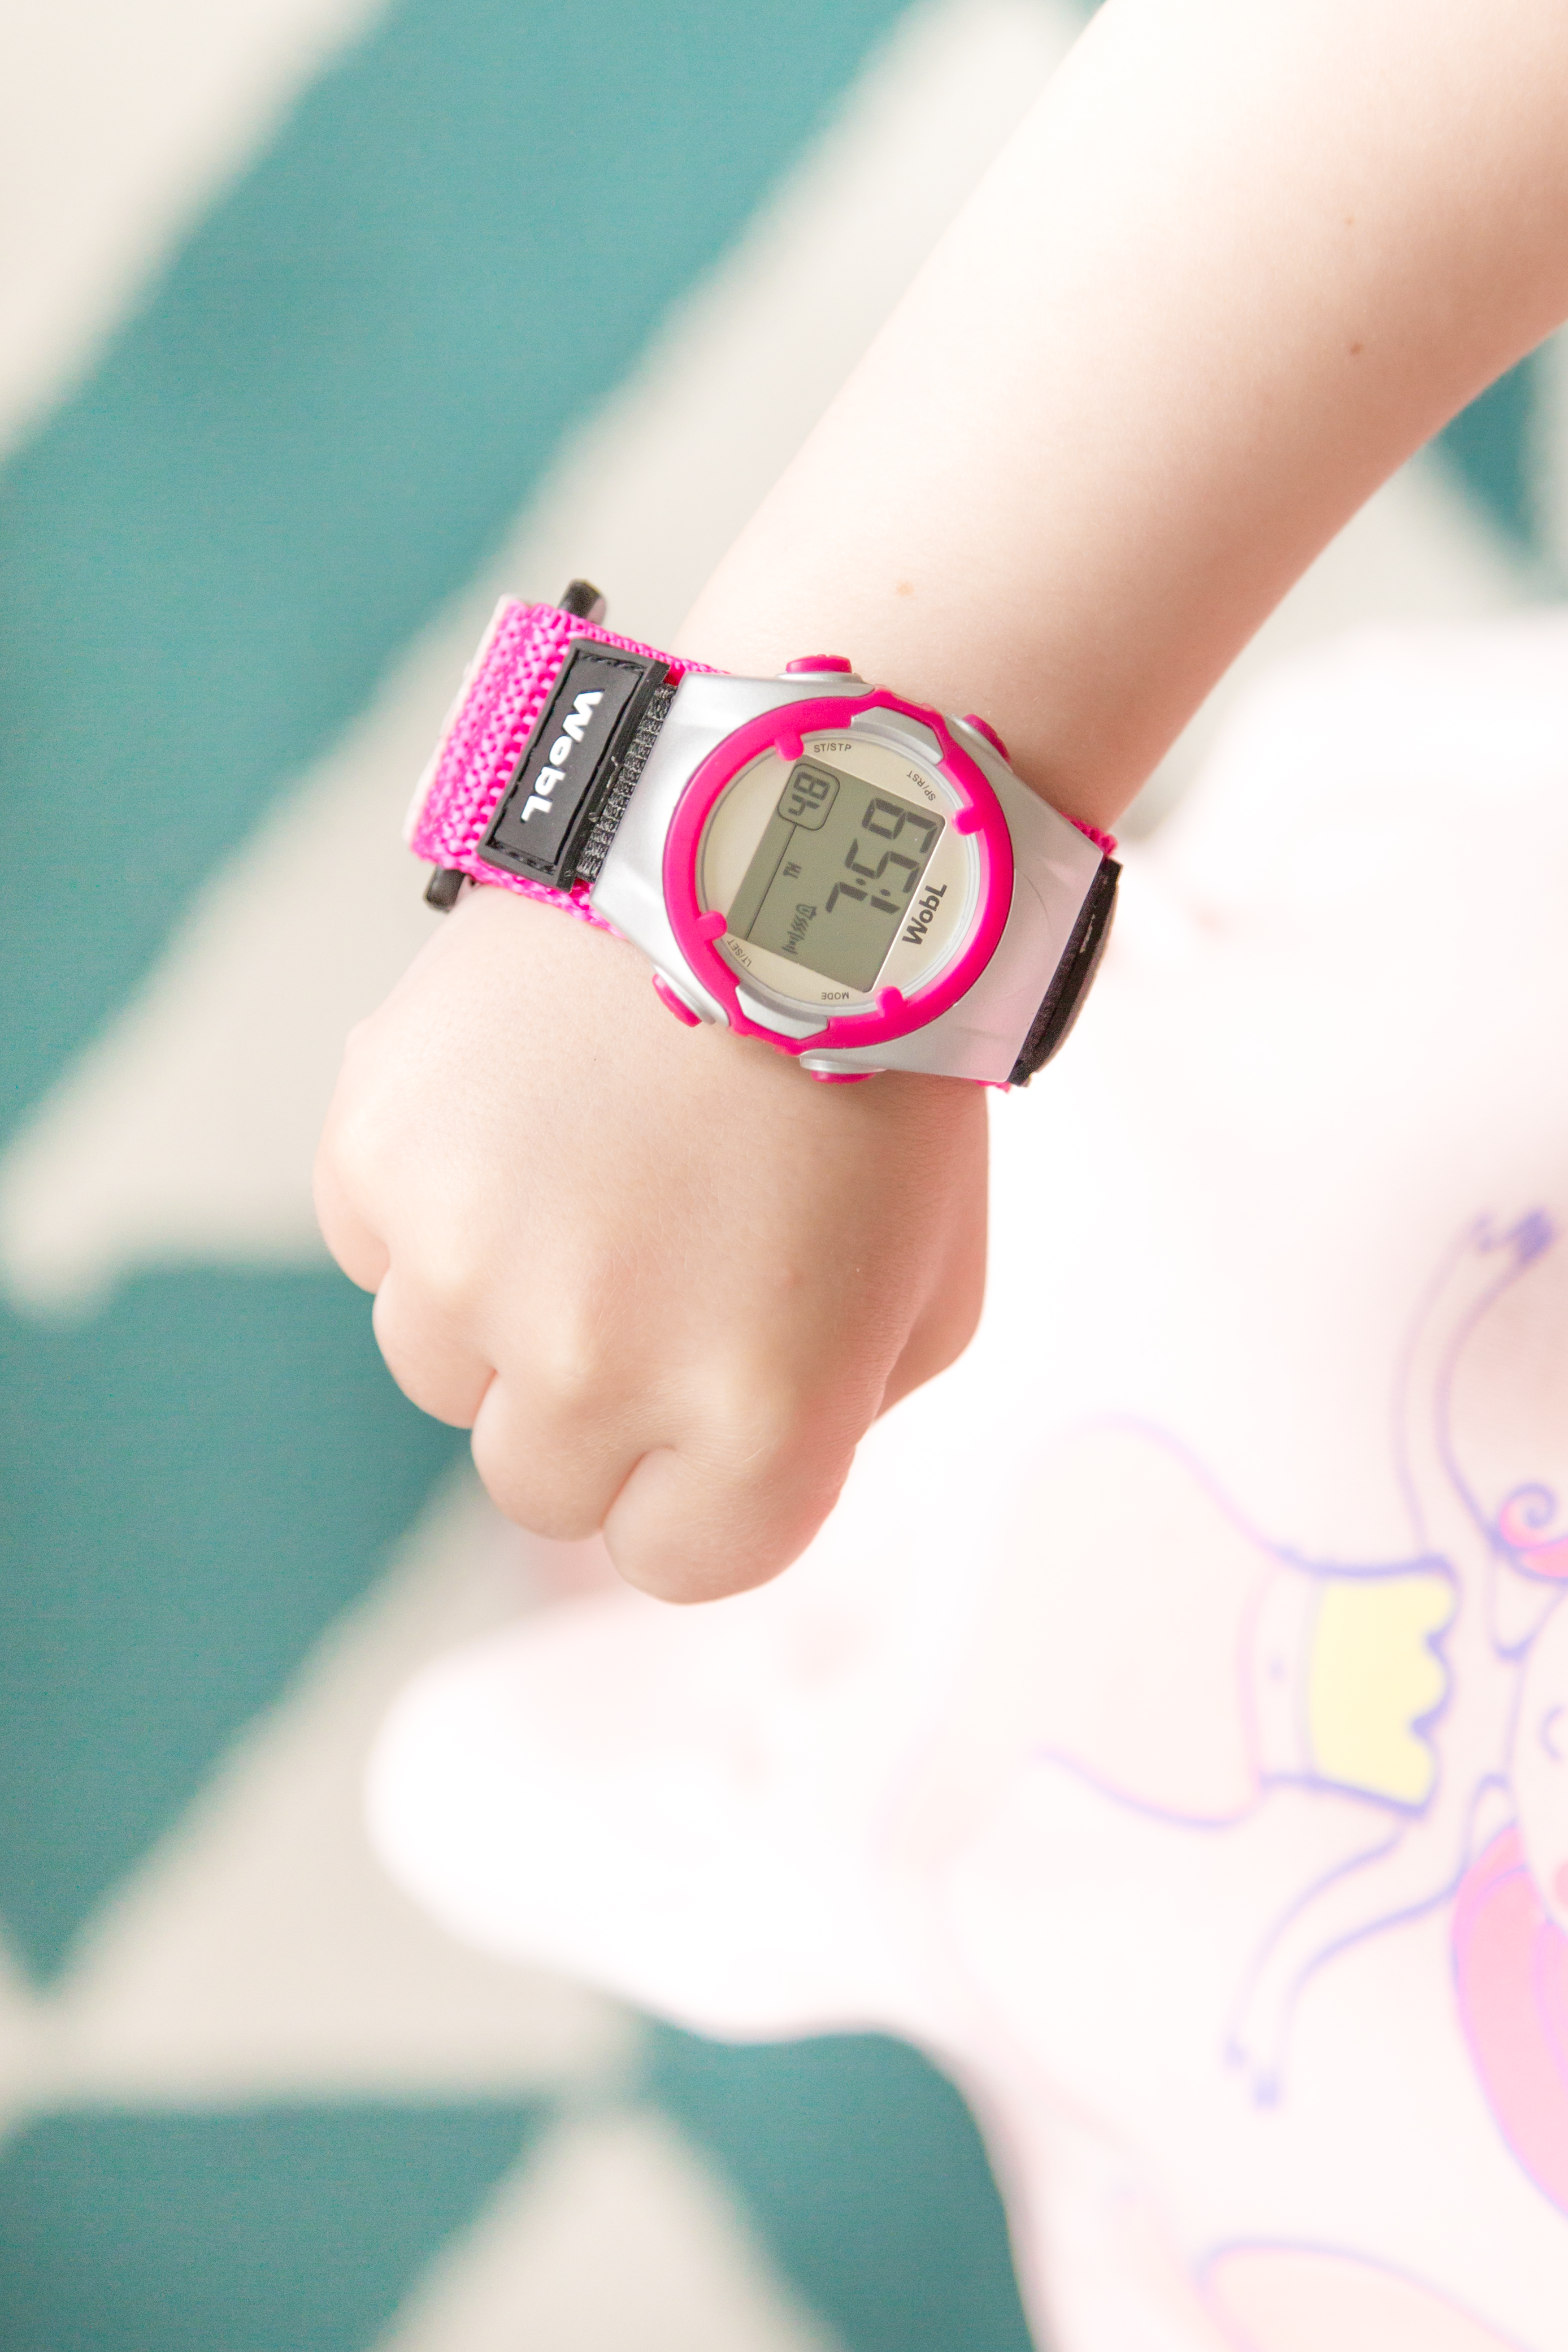 How to set wobl watch